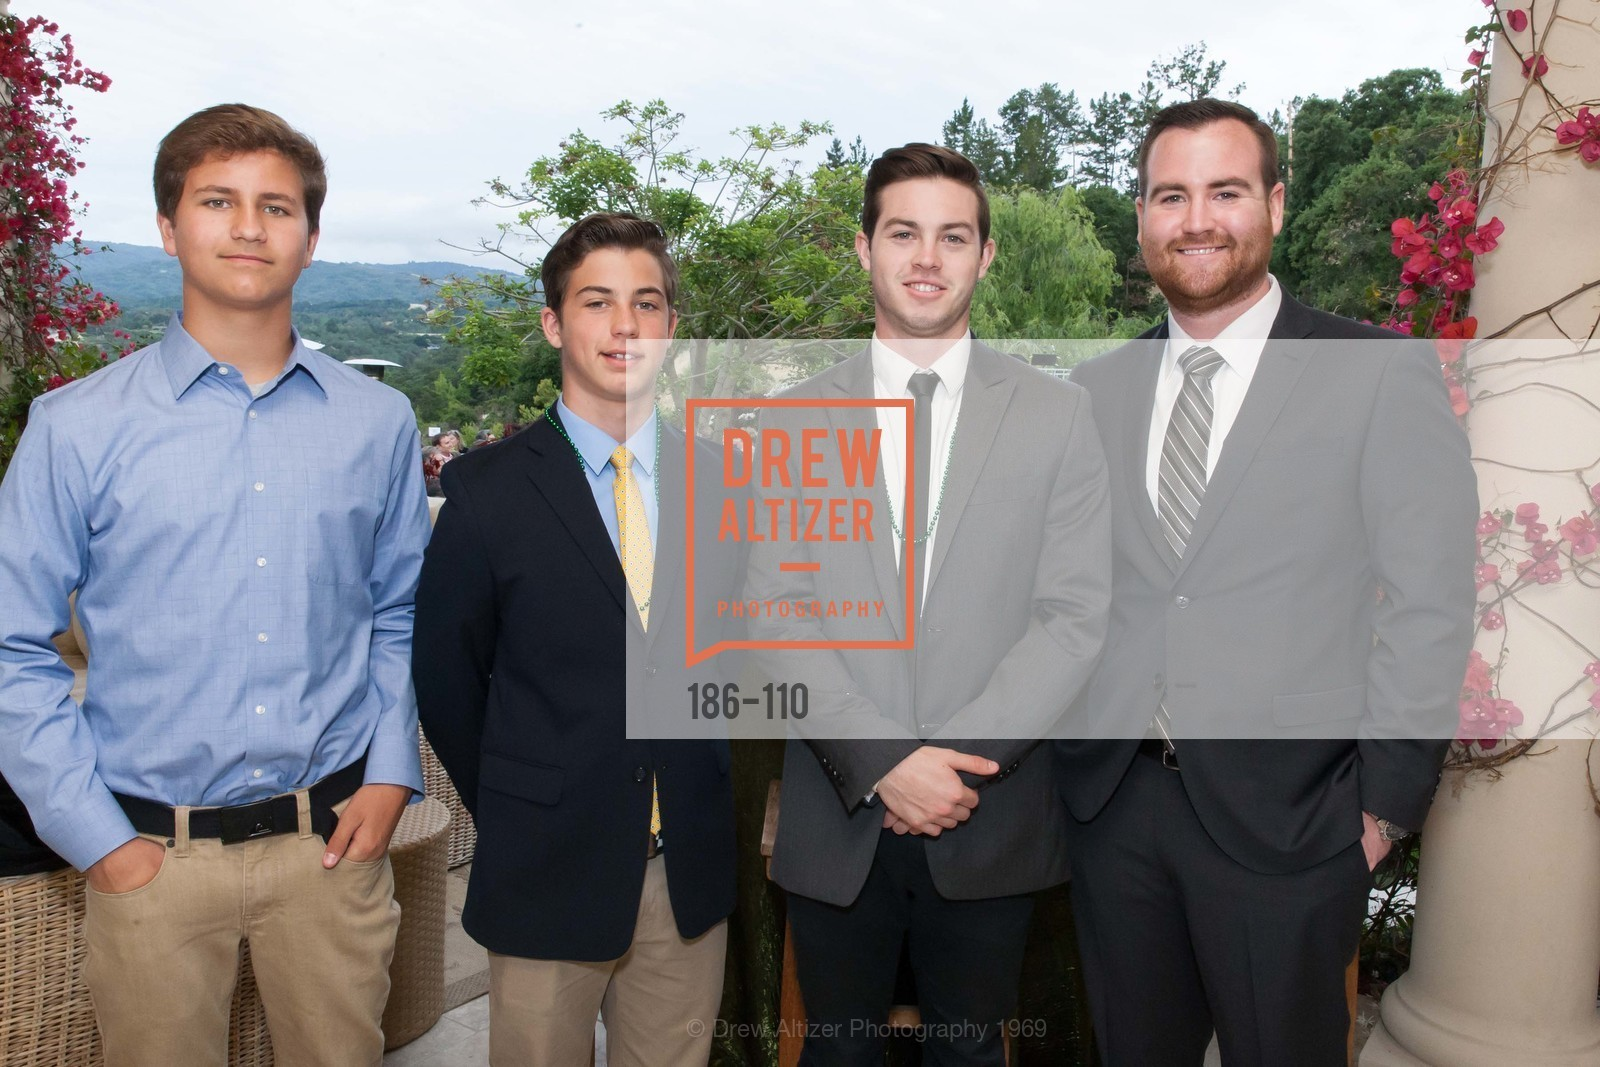 Jack Allen, Sawyer Giampa, Wyatt Giampa, Nick Giampa, LYME AID 2015 Benefiting the Bay Area Lyme Foundation, Private Residence, May 16th, 2015,Drew Altizer, Drew Altizer Photography, full-service agency, private events, San Francisco photographer, photographer california